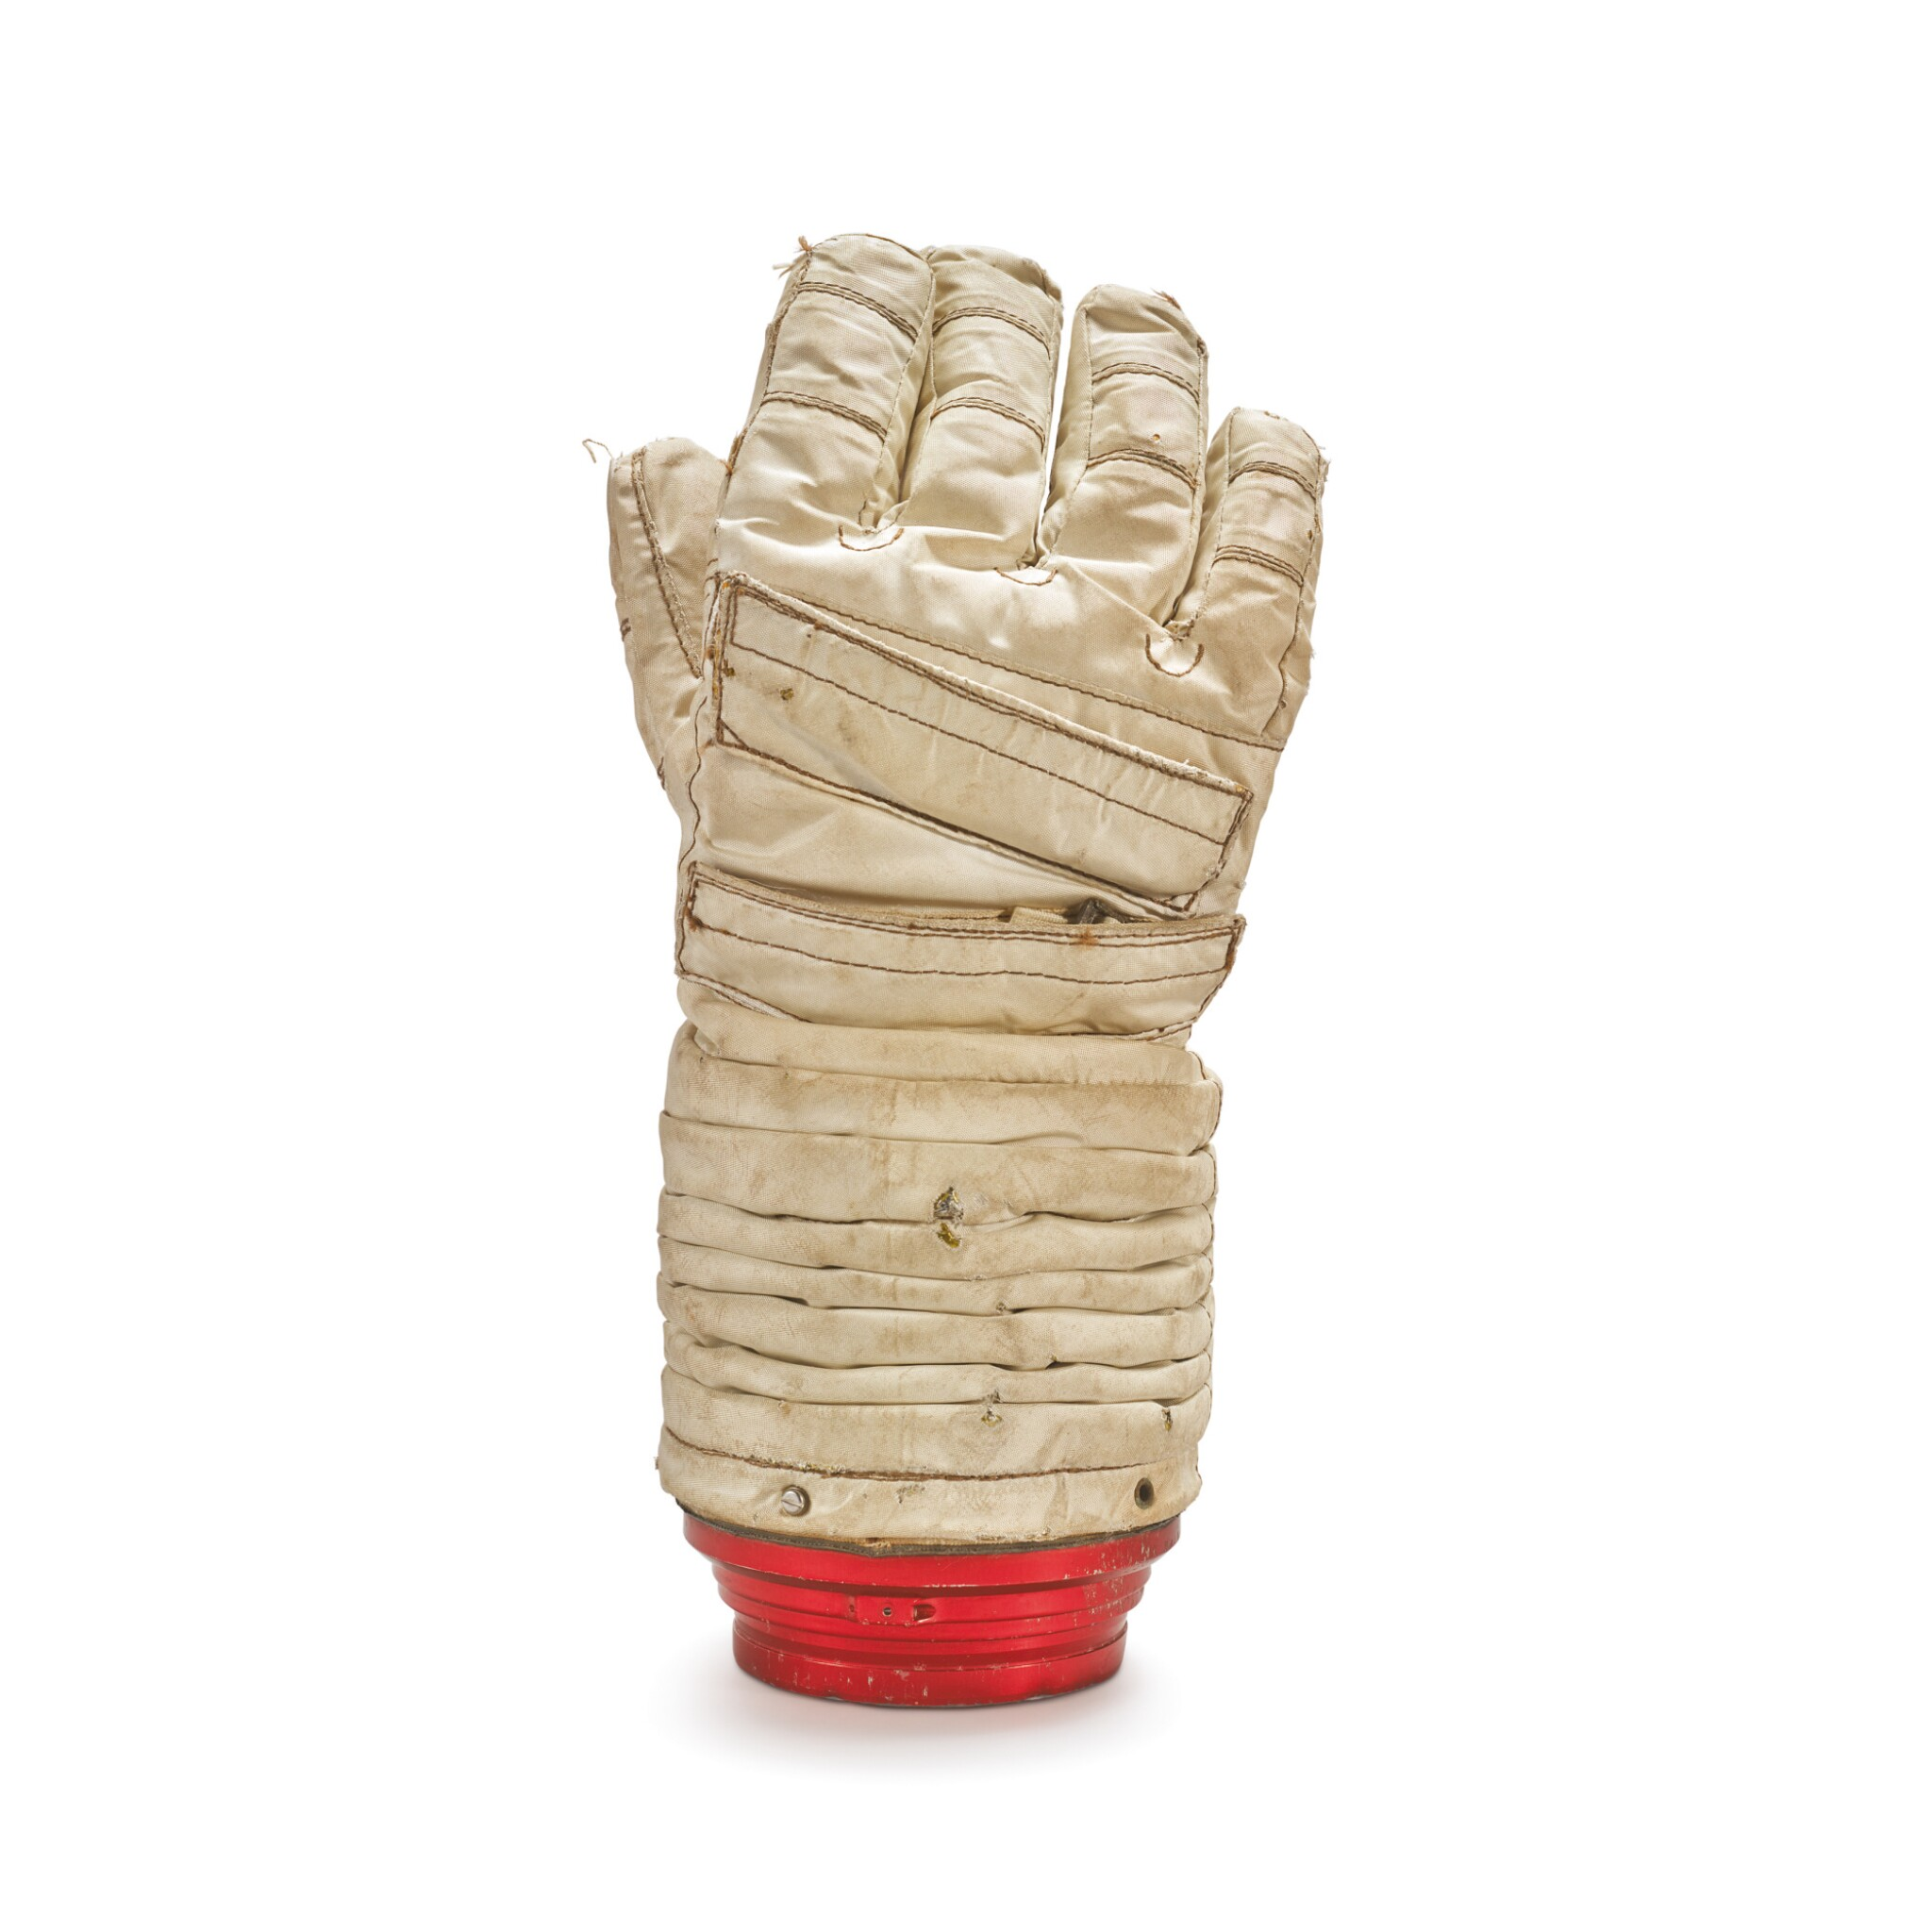 View full screen - View 1 of Lot 13. APOLLO ADVANCED LUNAR EVA PROTOTYPE GLOVE, MADE FOR RUSSELL SCHWEICKART, CA 1966.